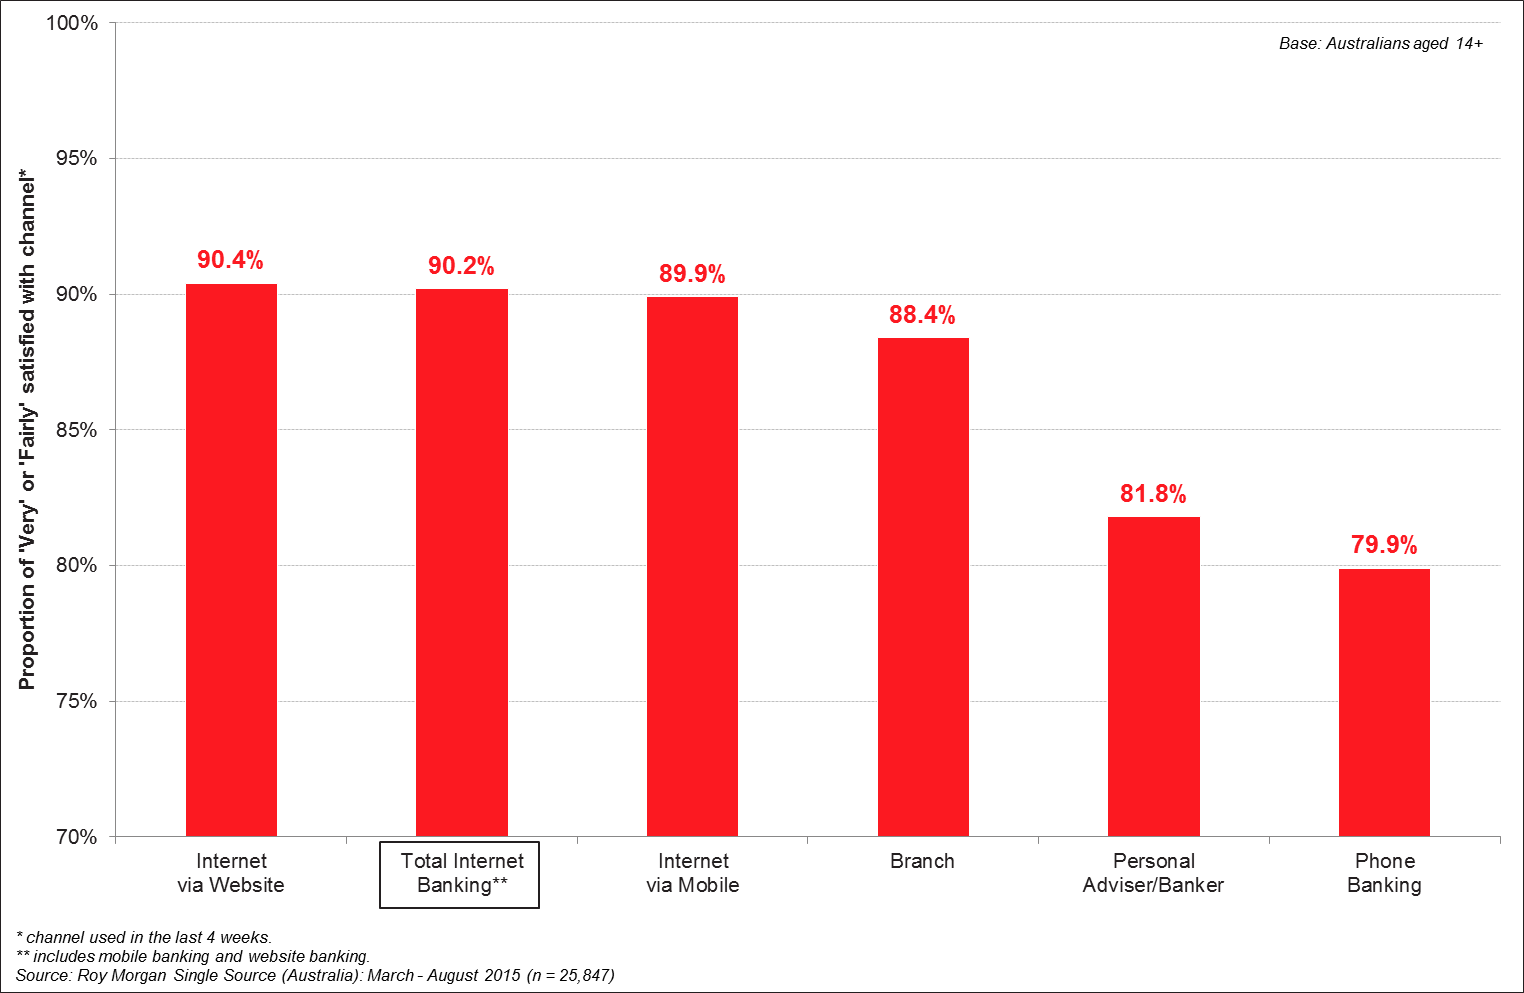 Png westpac internet banking. Growth and satisfaction outstrips